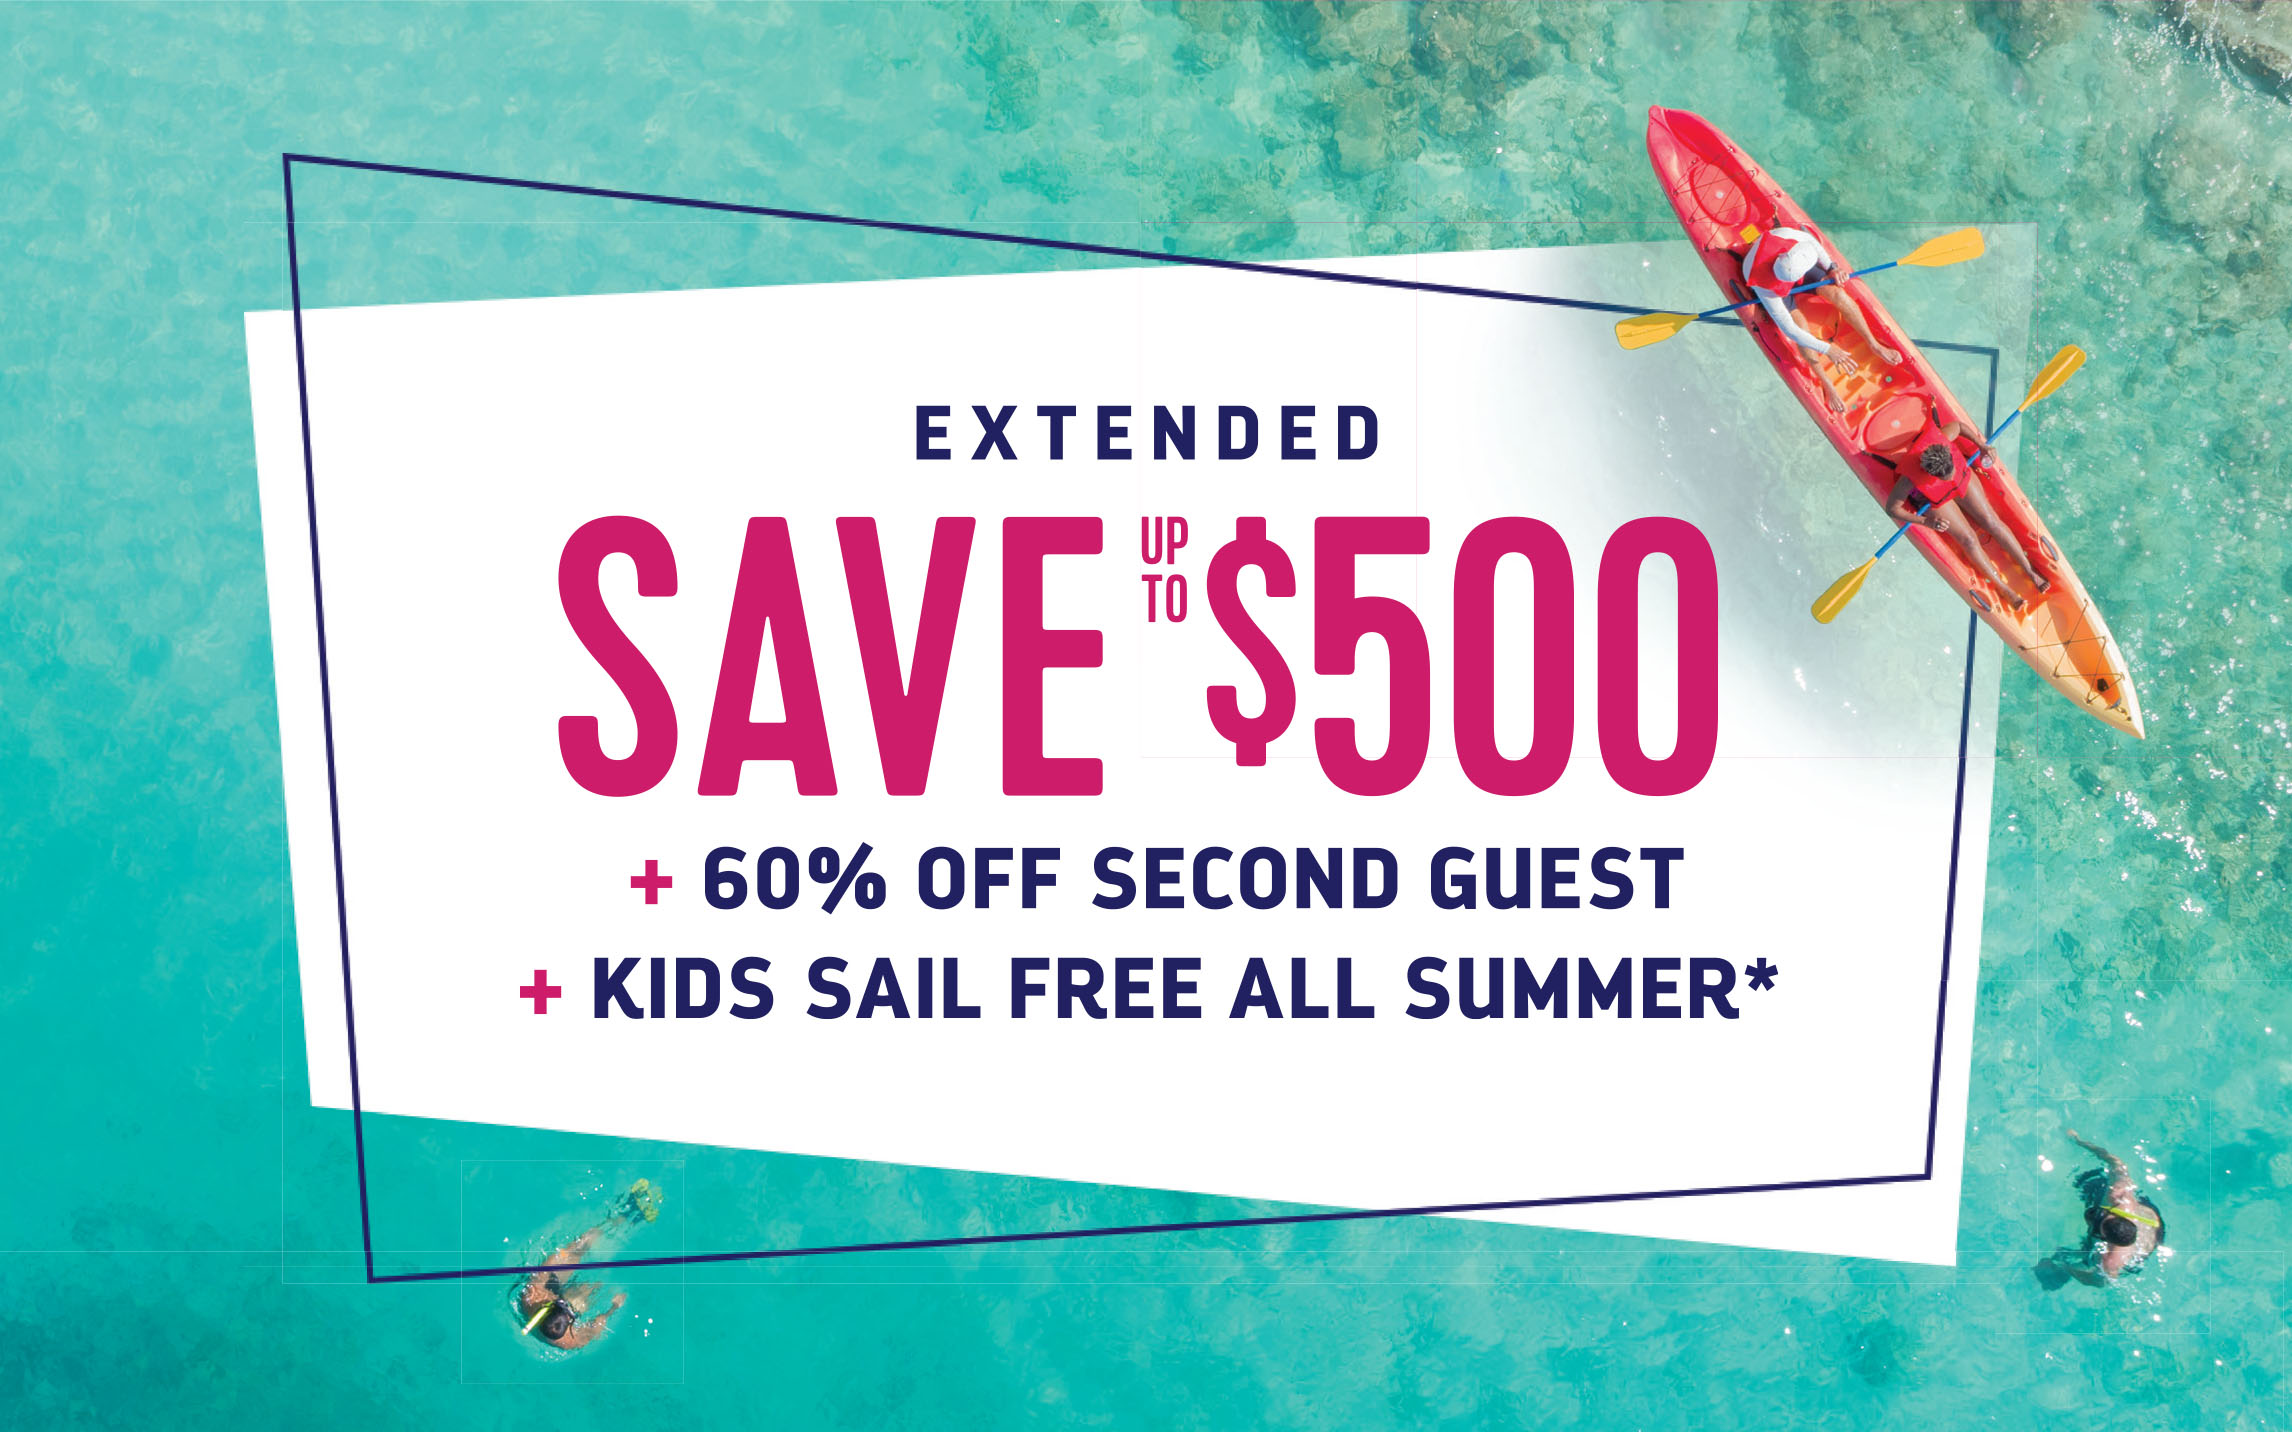 60% off Second Guest + Kids Sail Free + $500 off